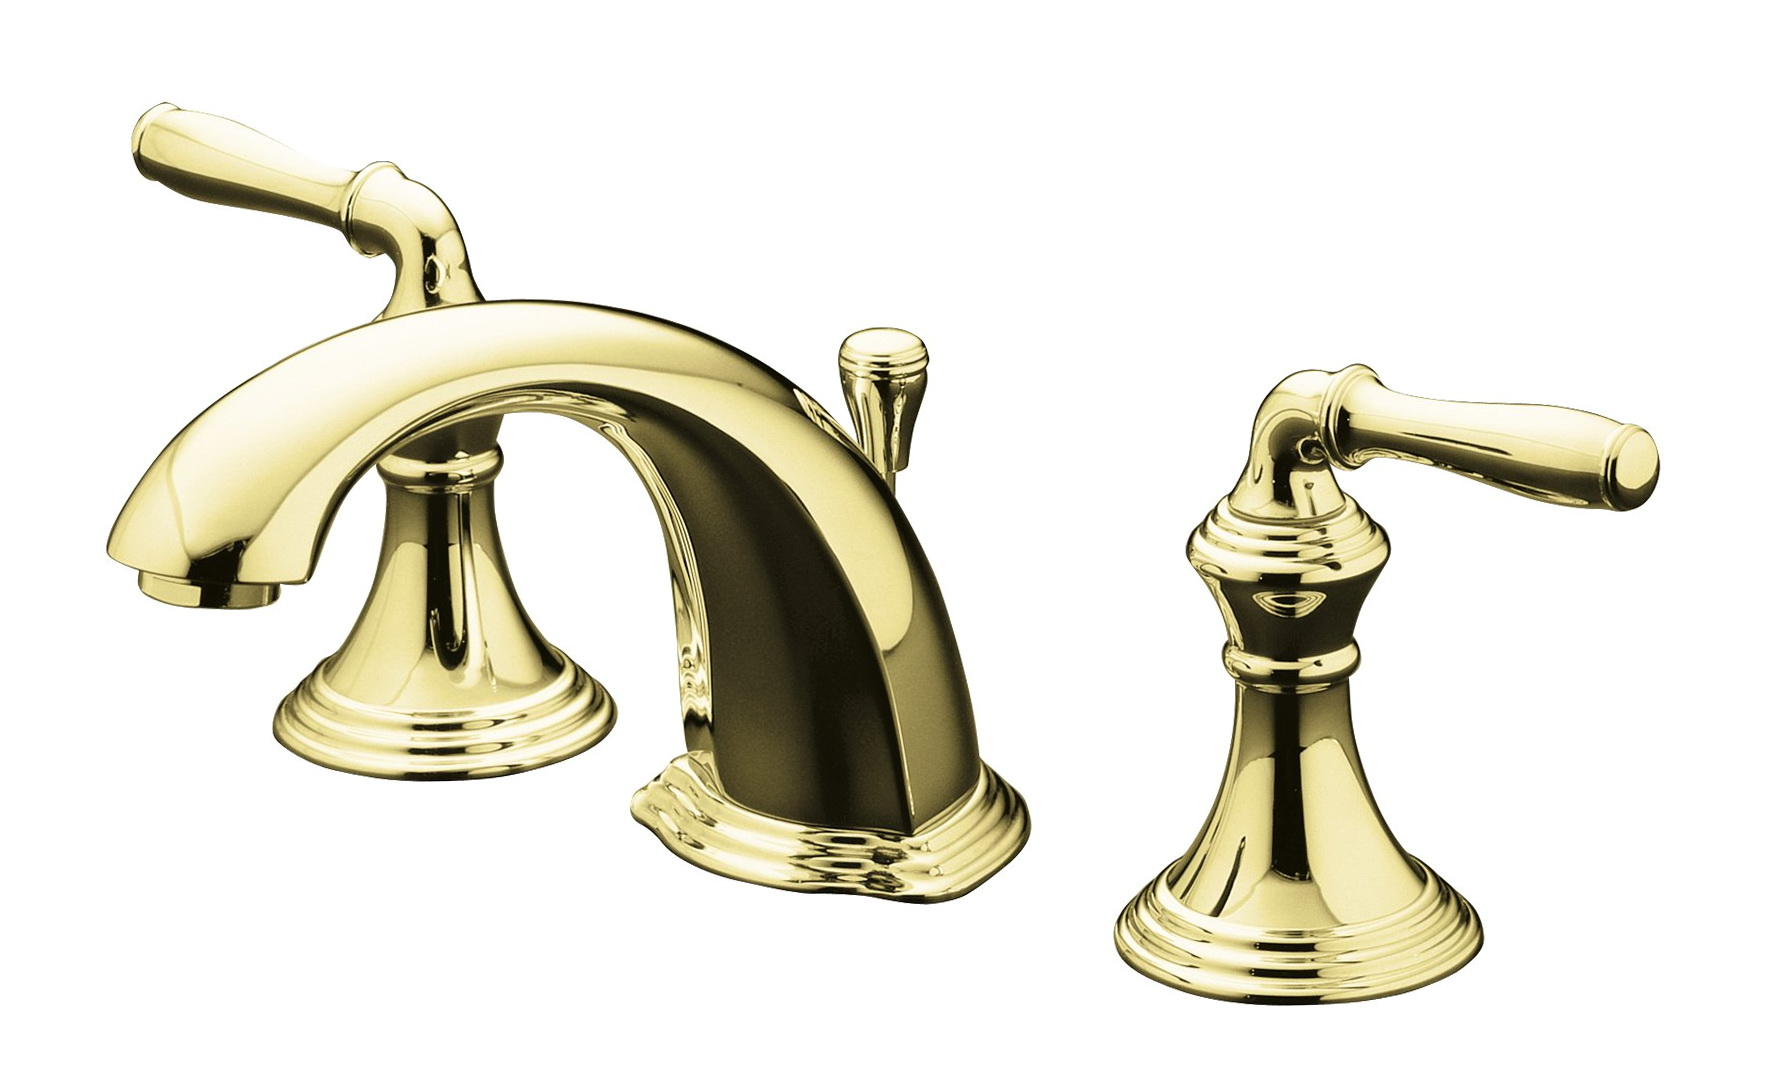 Brass Kohler Bathroom Faucets